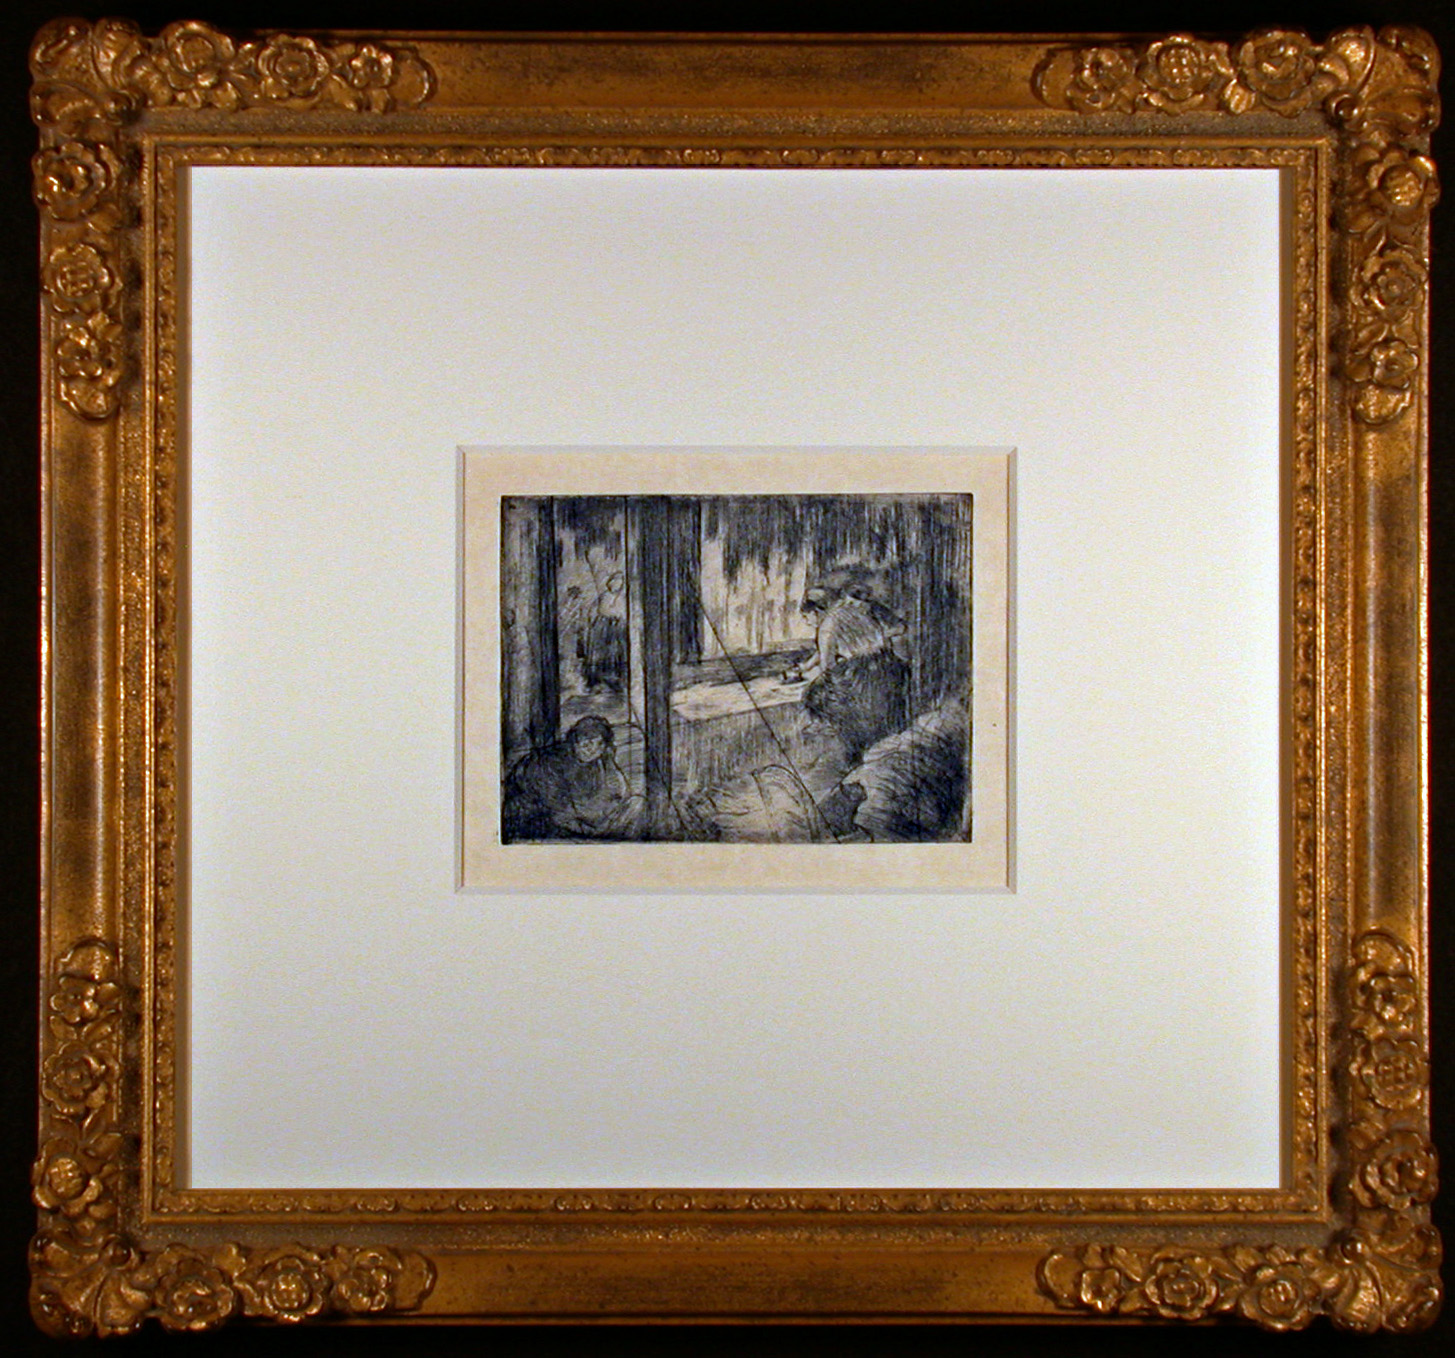 The Laundresses Original Etching by Edgar Degas Framed and Matted